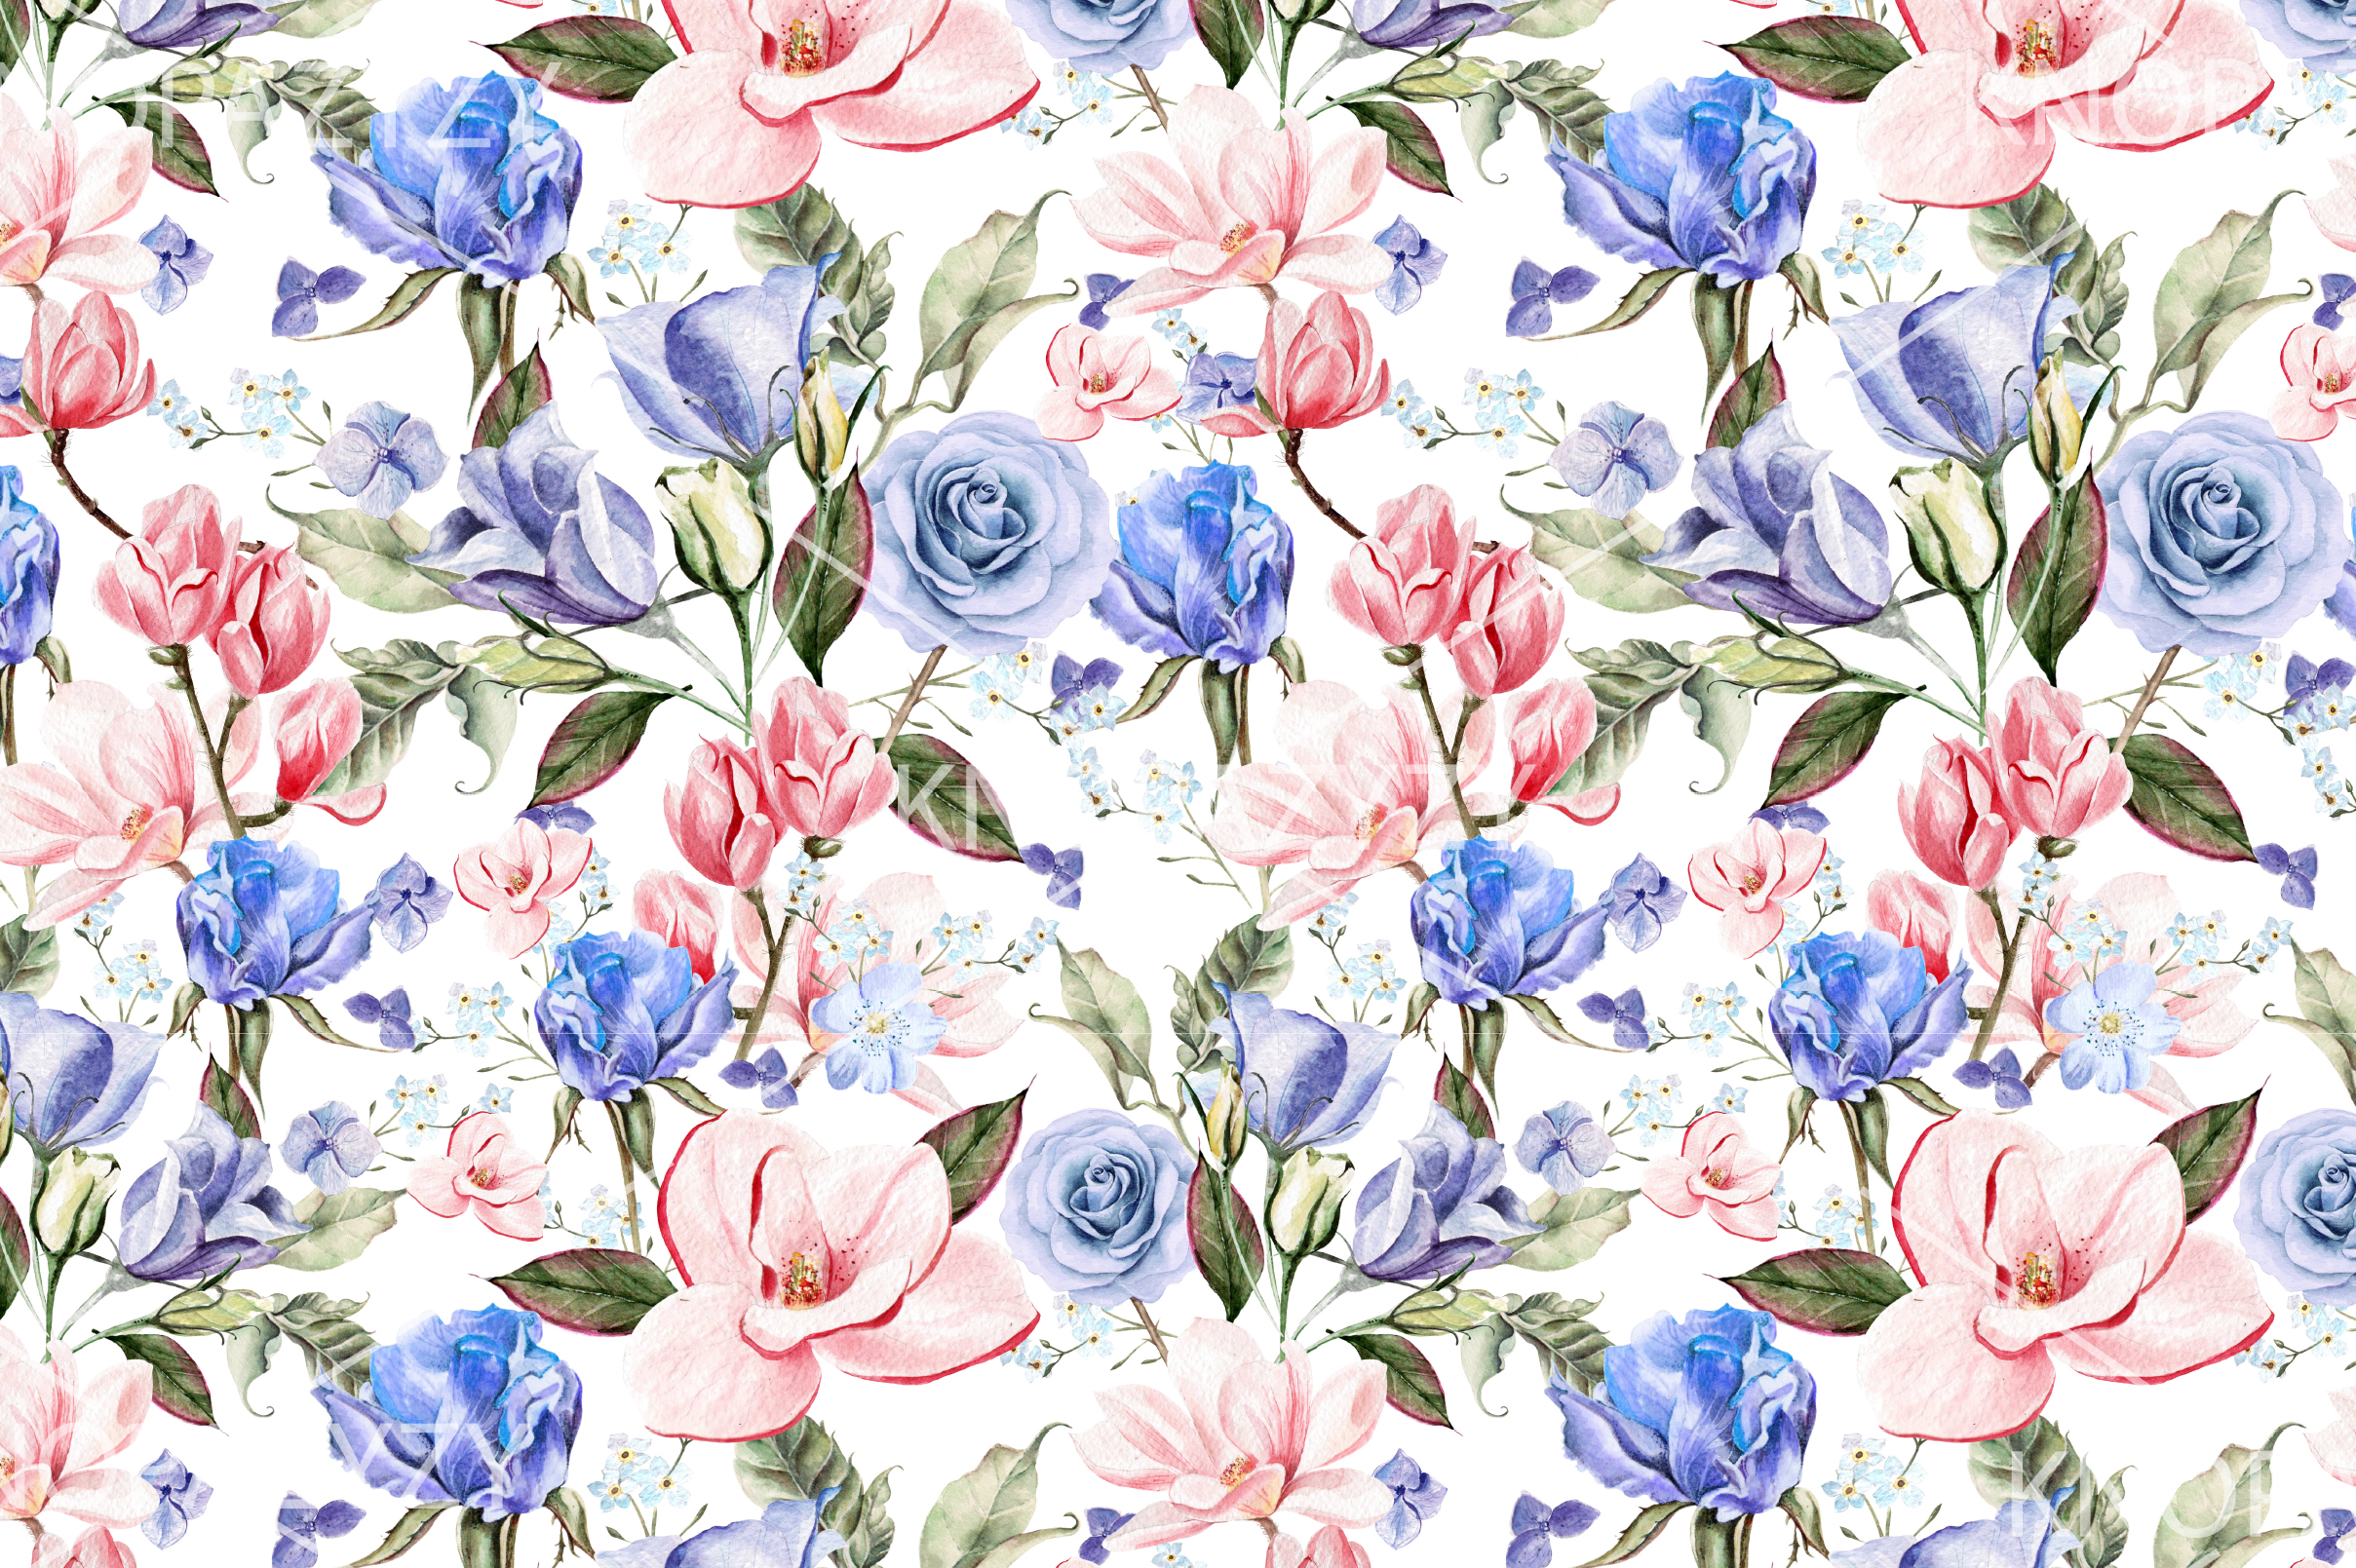 7 Hand Drawn Watercolor PATTERNS example image 5